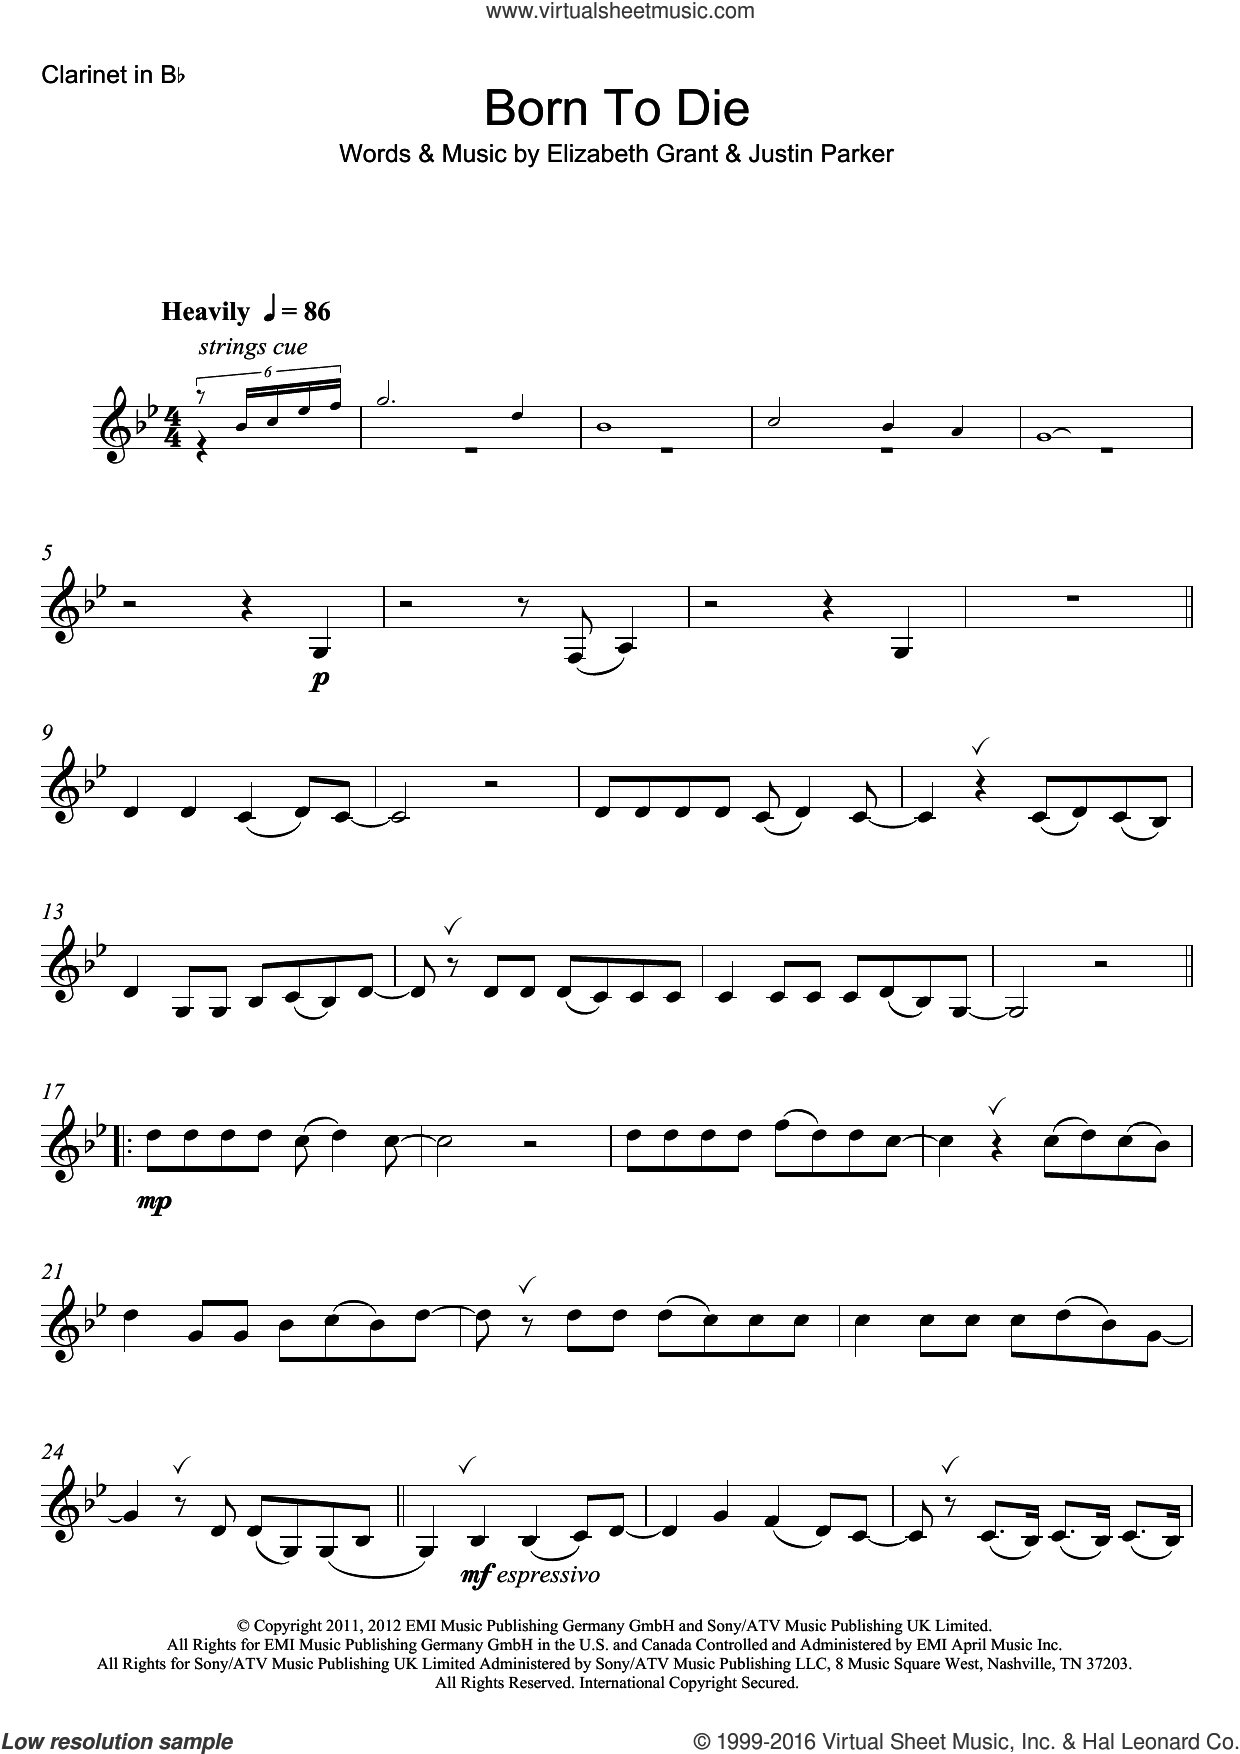 Born To Die sheet music for clarinet solo by Justin Parker